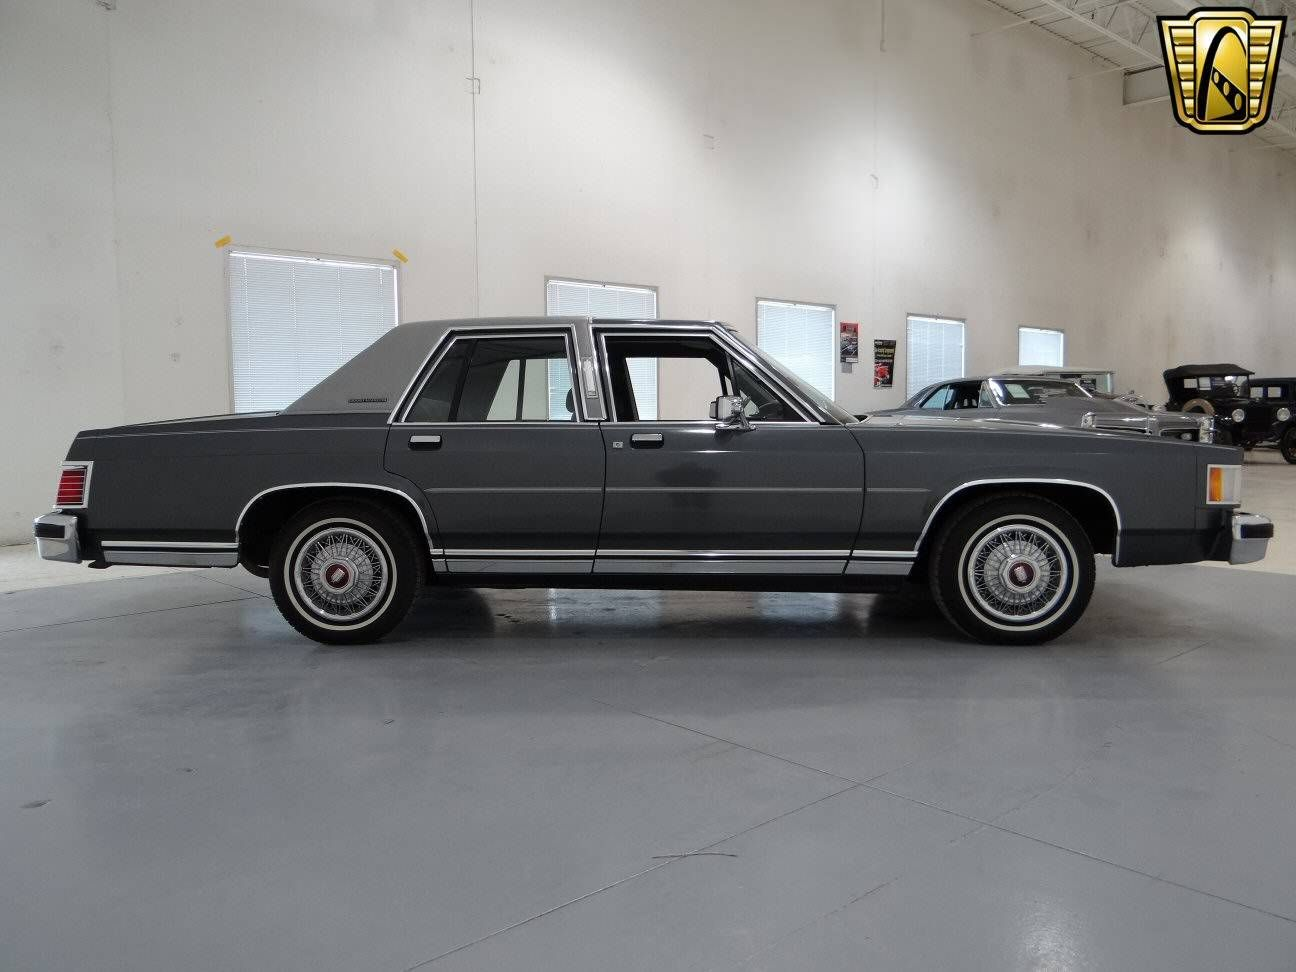 Displaying 13 total results for classic mercury grand marquis vehicles for sale